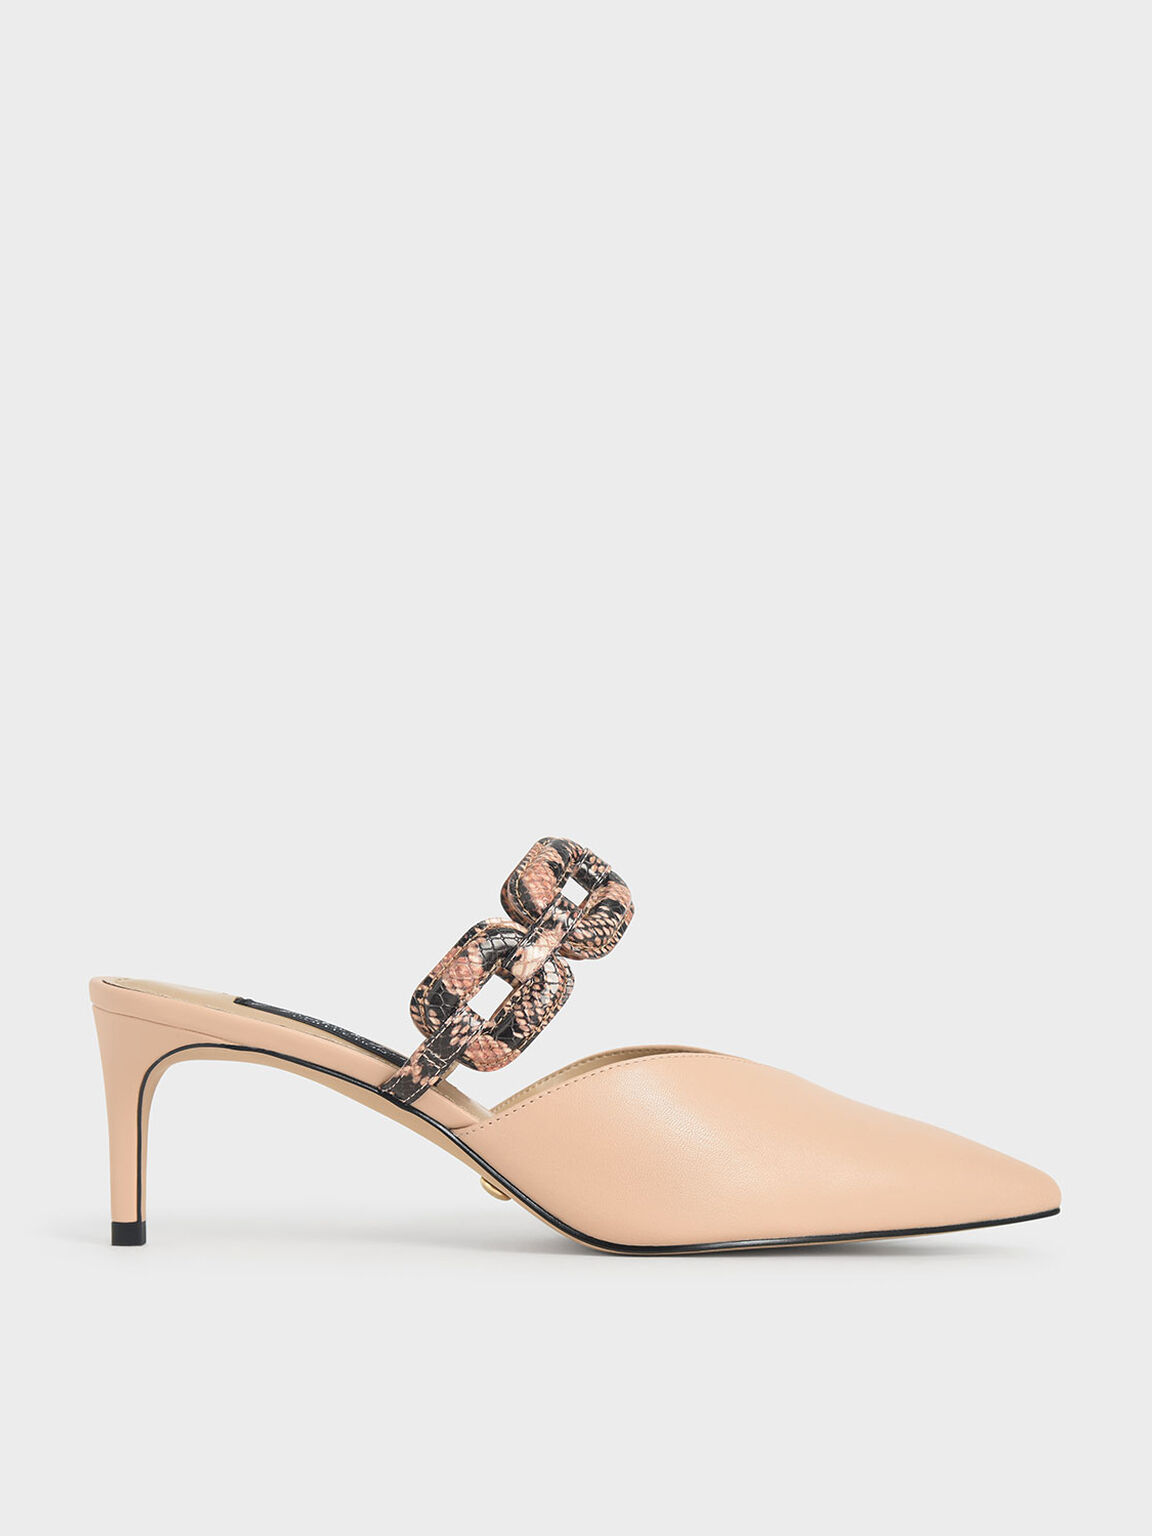 Leather Snake Print Mules, Light Pink, hi-res